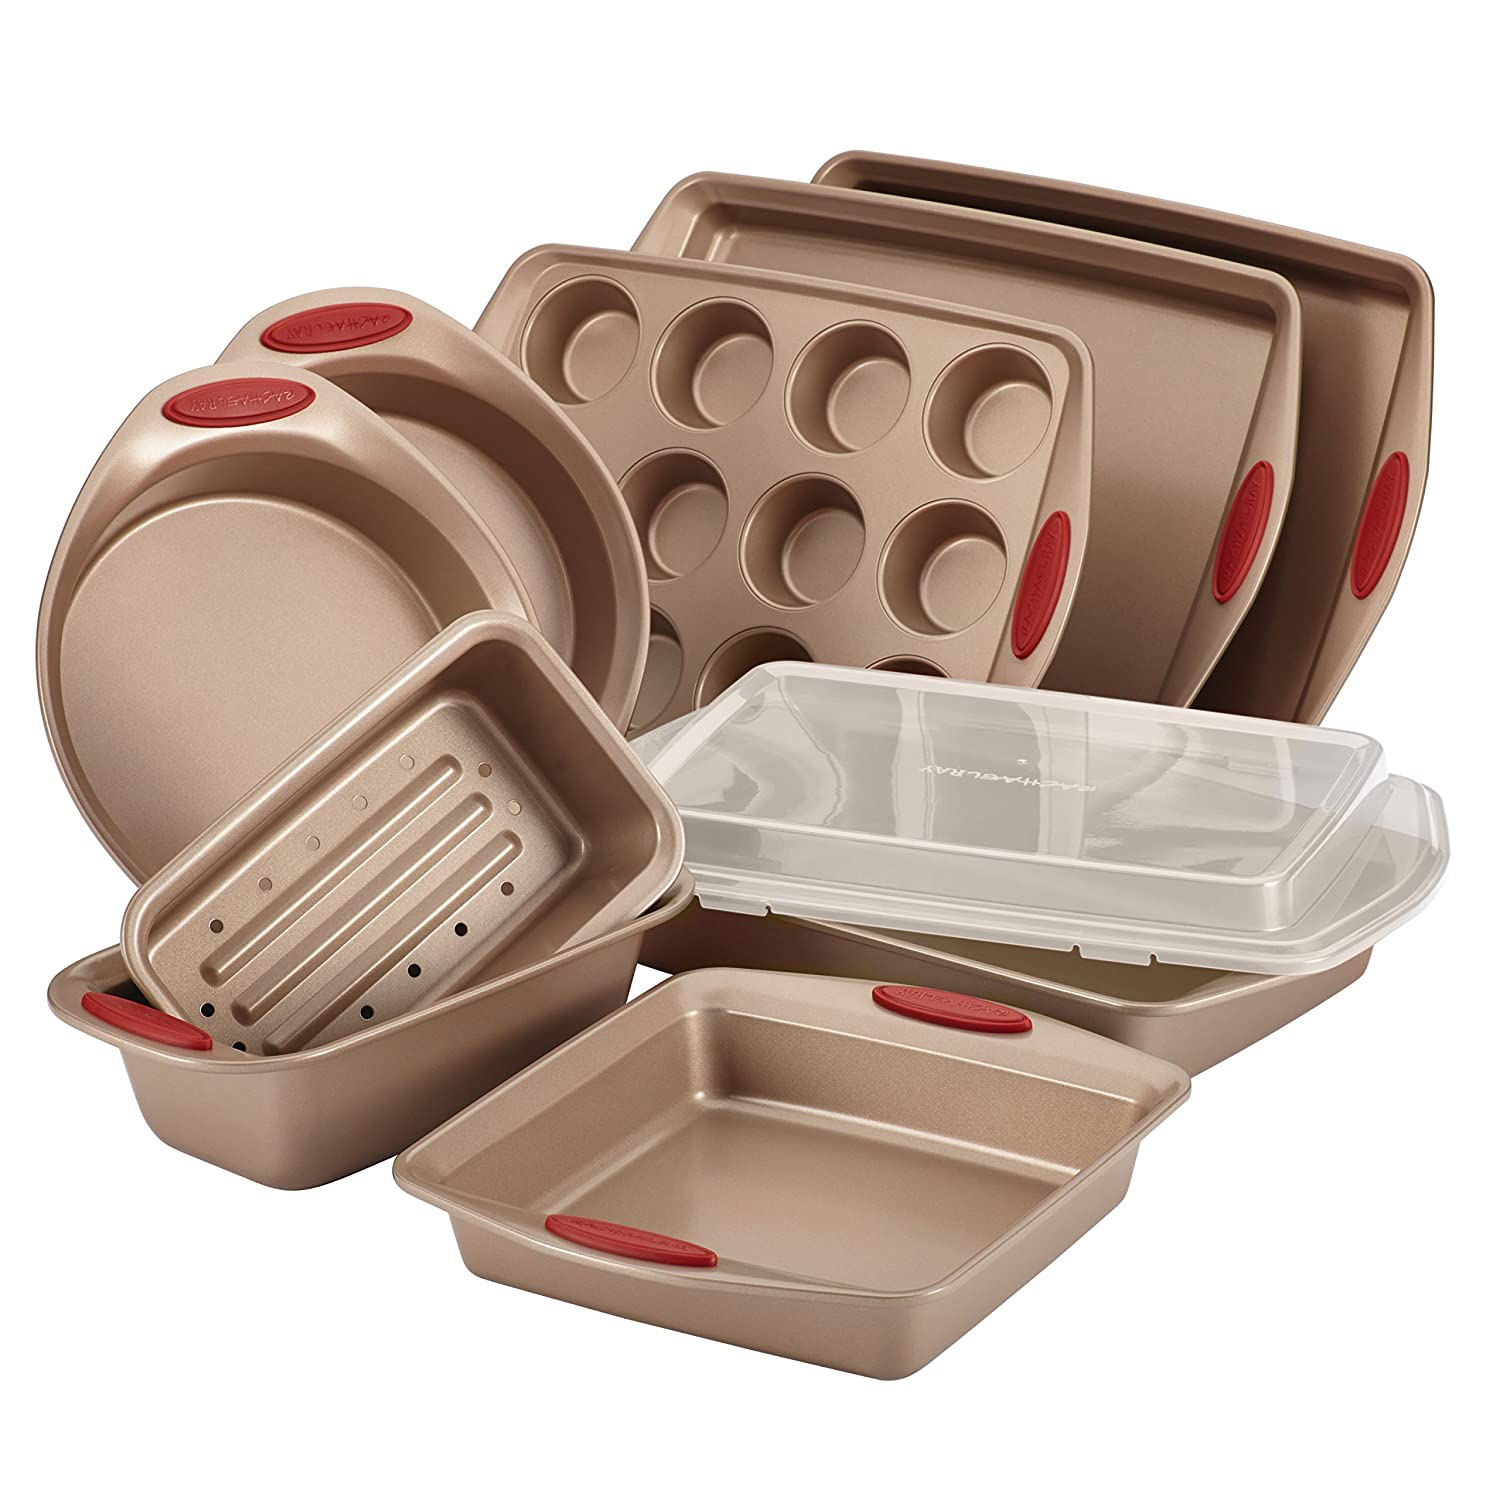 bakeware set | 13 Discount Kitchenware You Must Grab on Cyber Monday